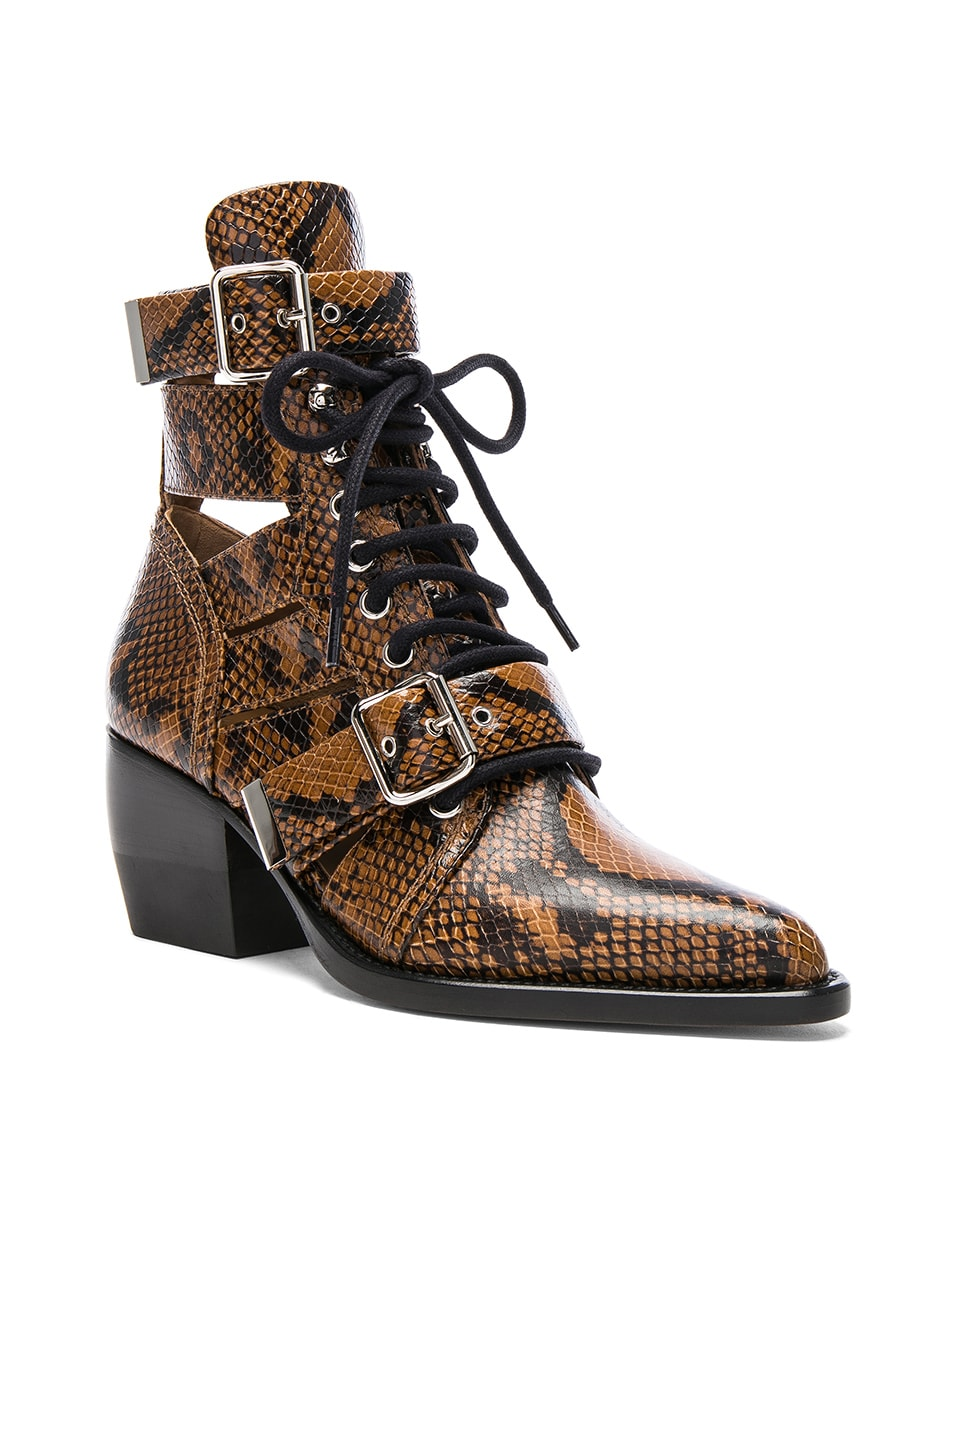 Image 2 of Chloe Rylee Python Print Leather Lace Up Buckle Boots in Light Tan